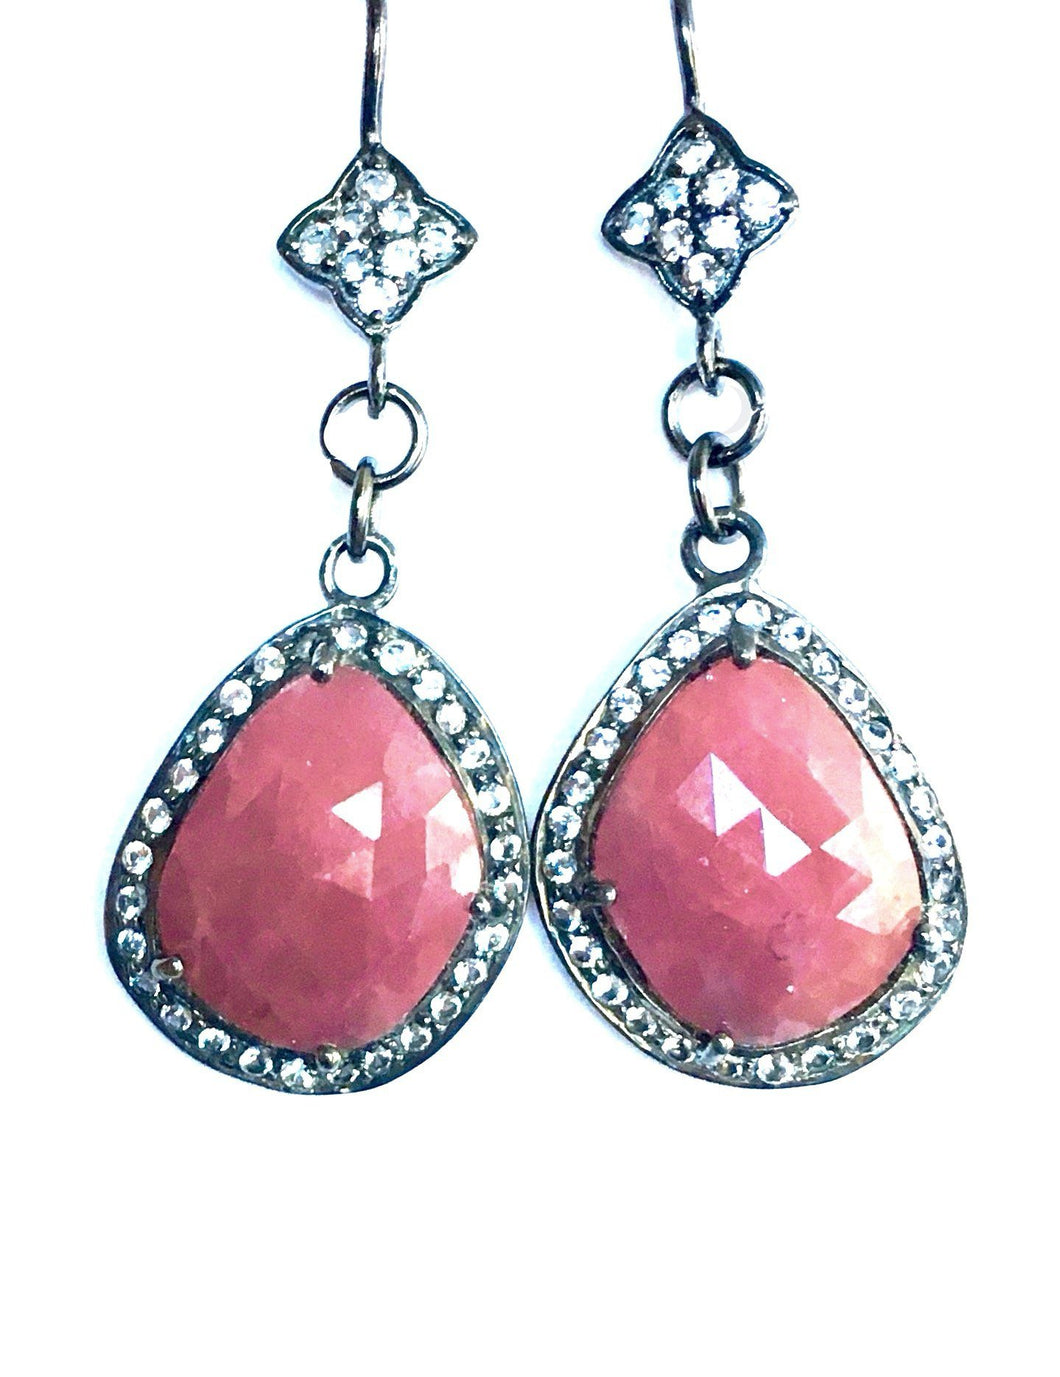 Quatrefoil White Topaz and Faceted Ruby Slice Earrings